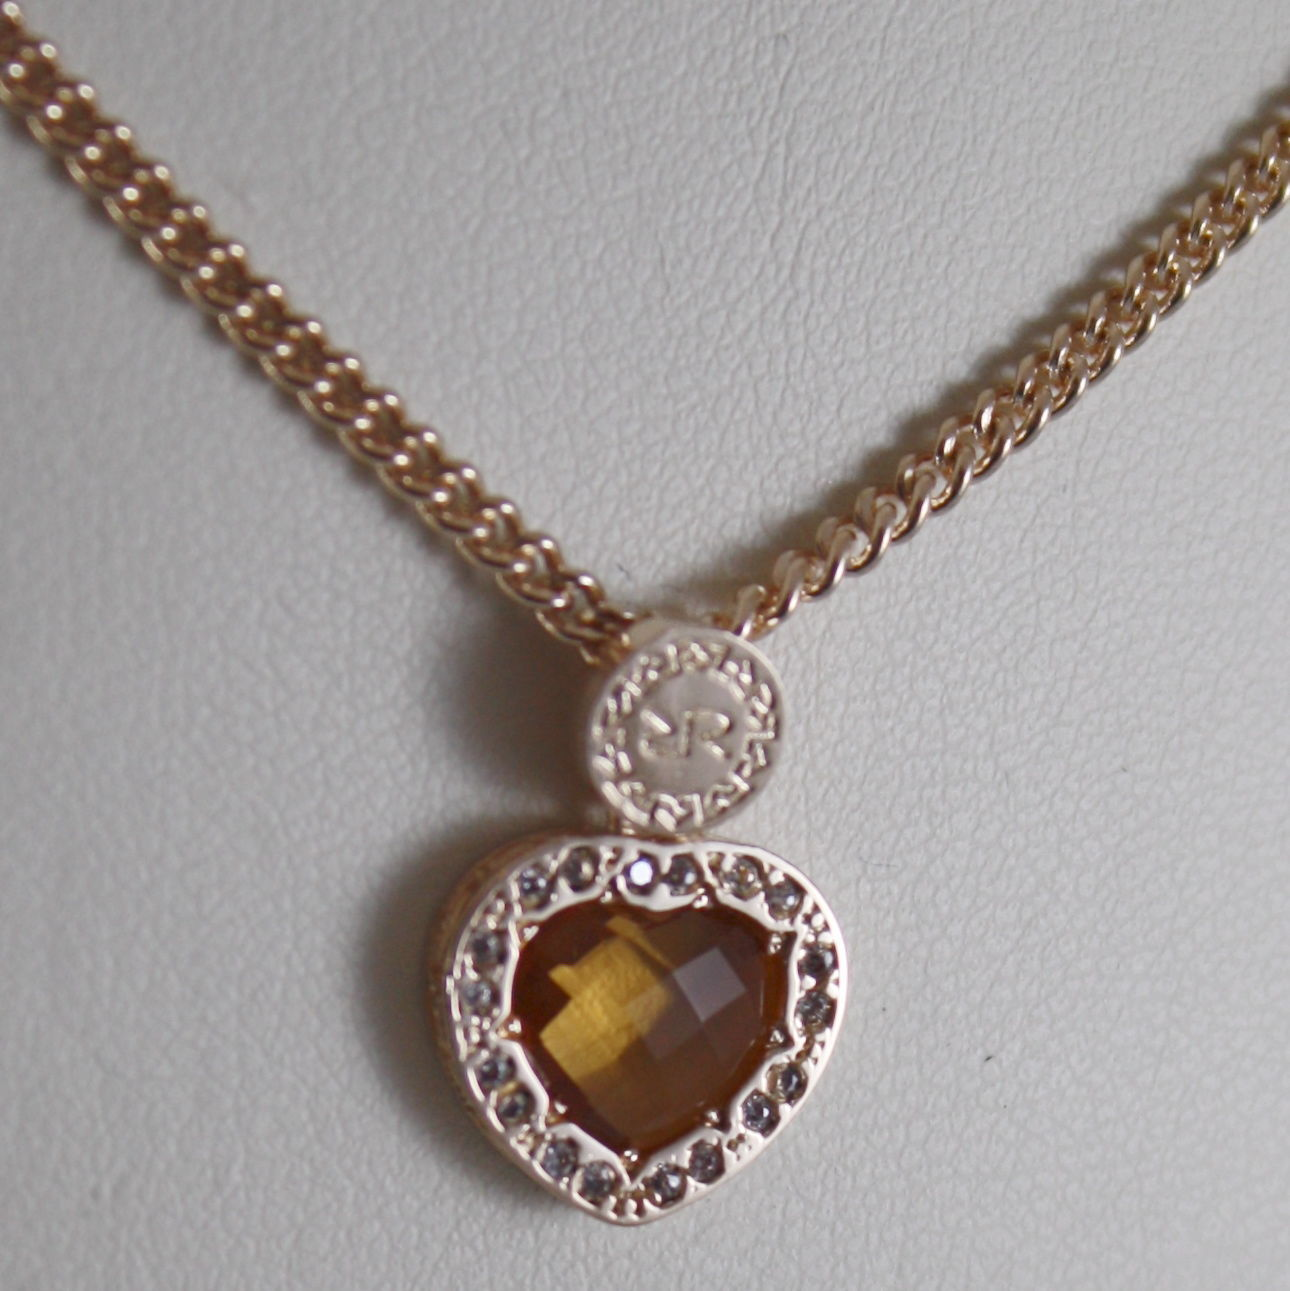 YELLOW BRONZE NECKLACE HEART B14KOC24 & ORANGE QUARTZ BY REBECCA MADE IN ITALY